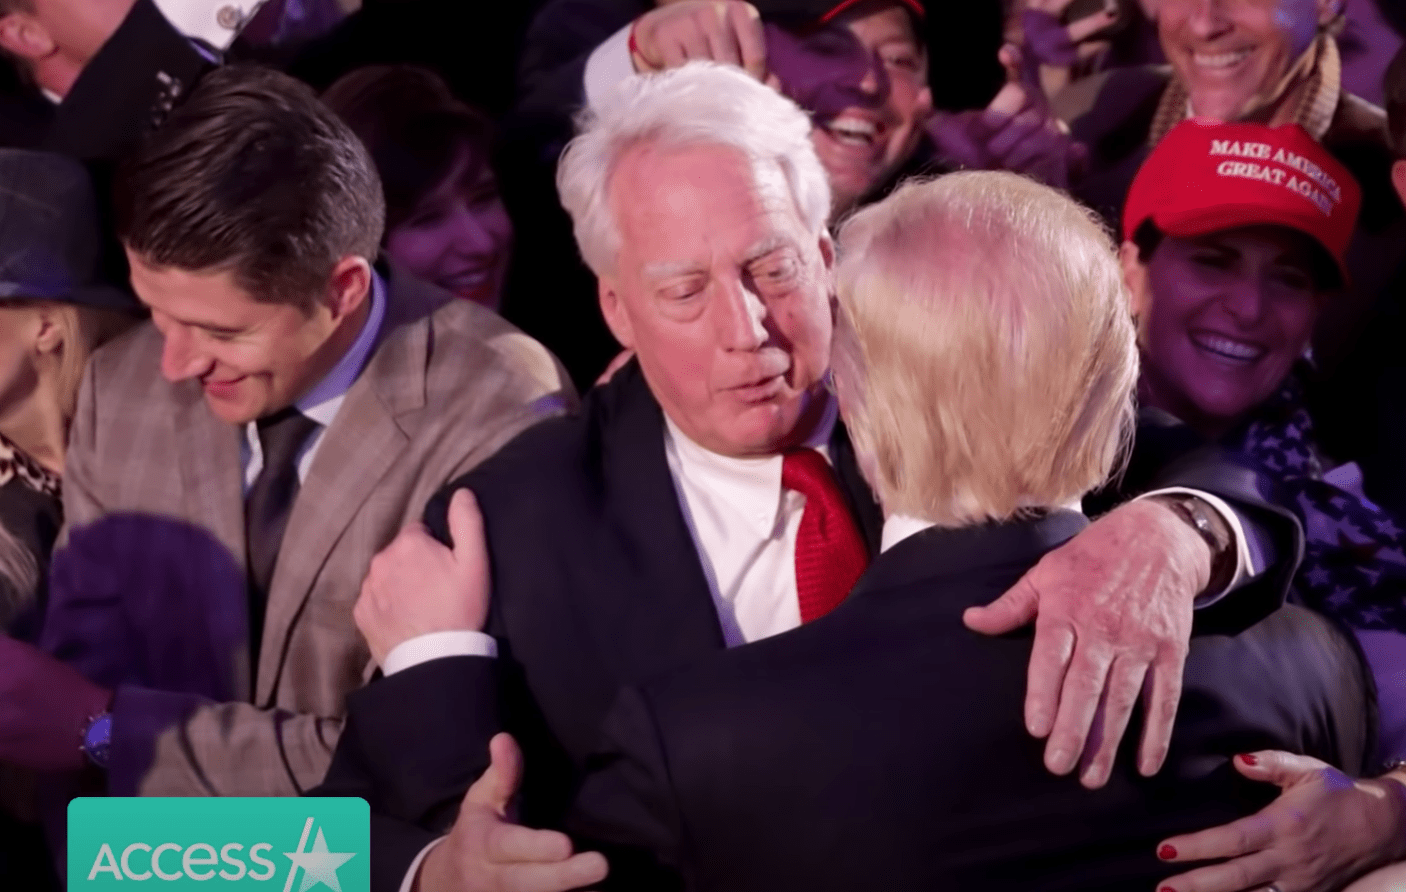 Celebrities and internet trolls mock the death of President Trump's brother: 'Grim Reaper took the wrong Trump'